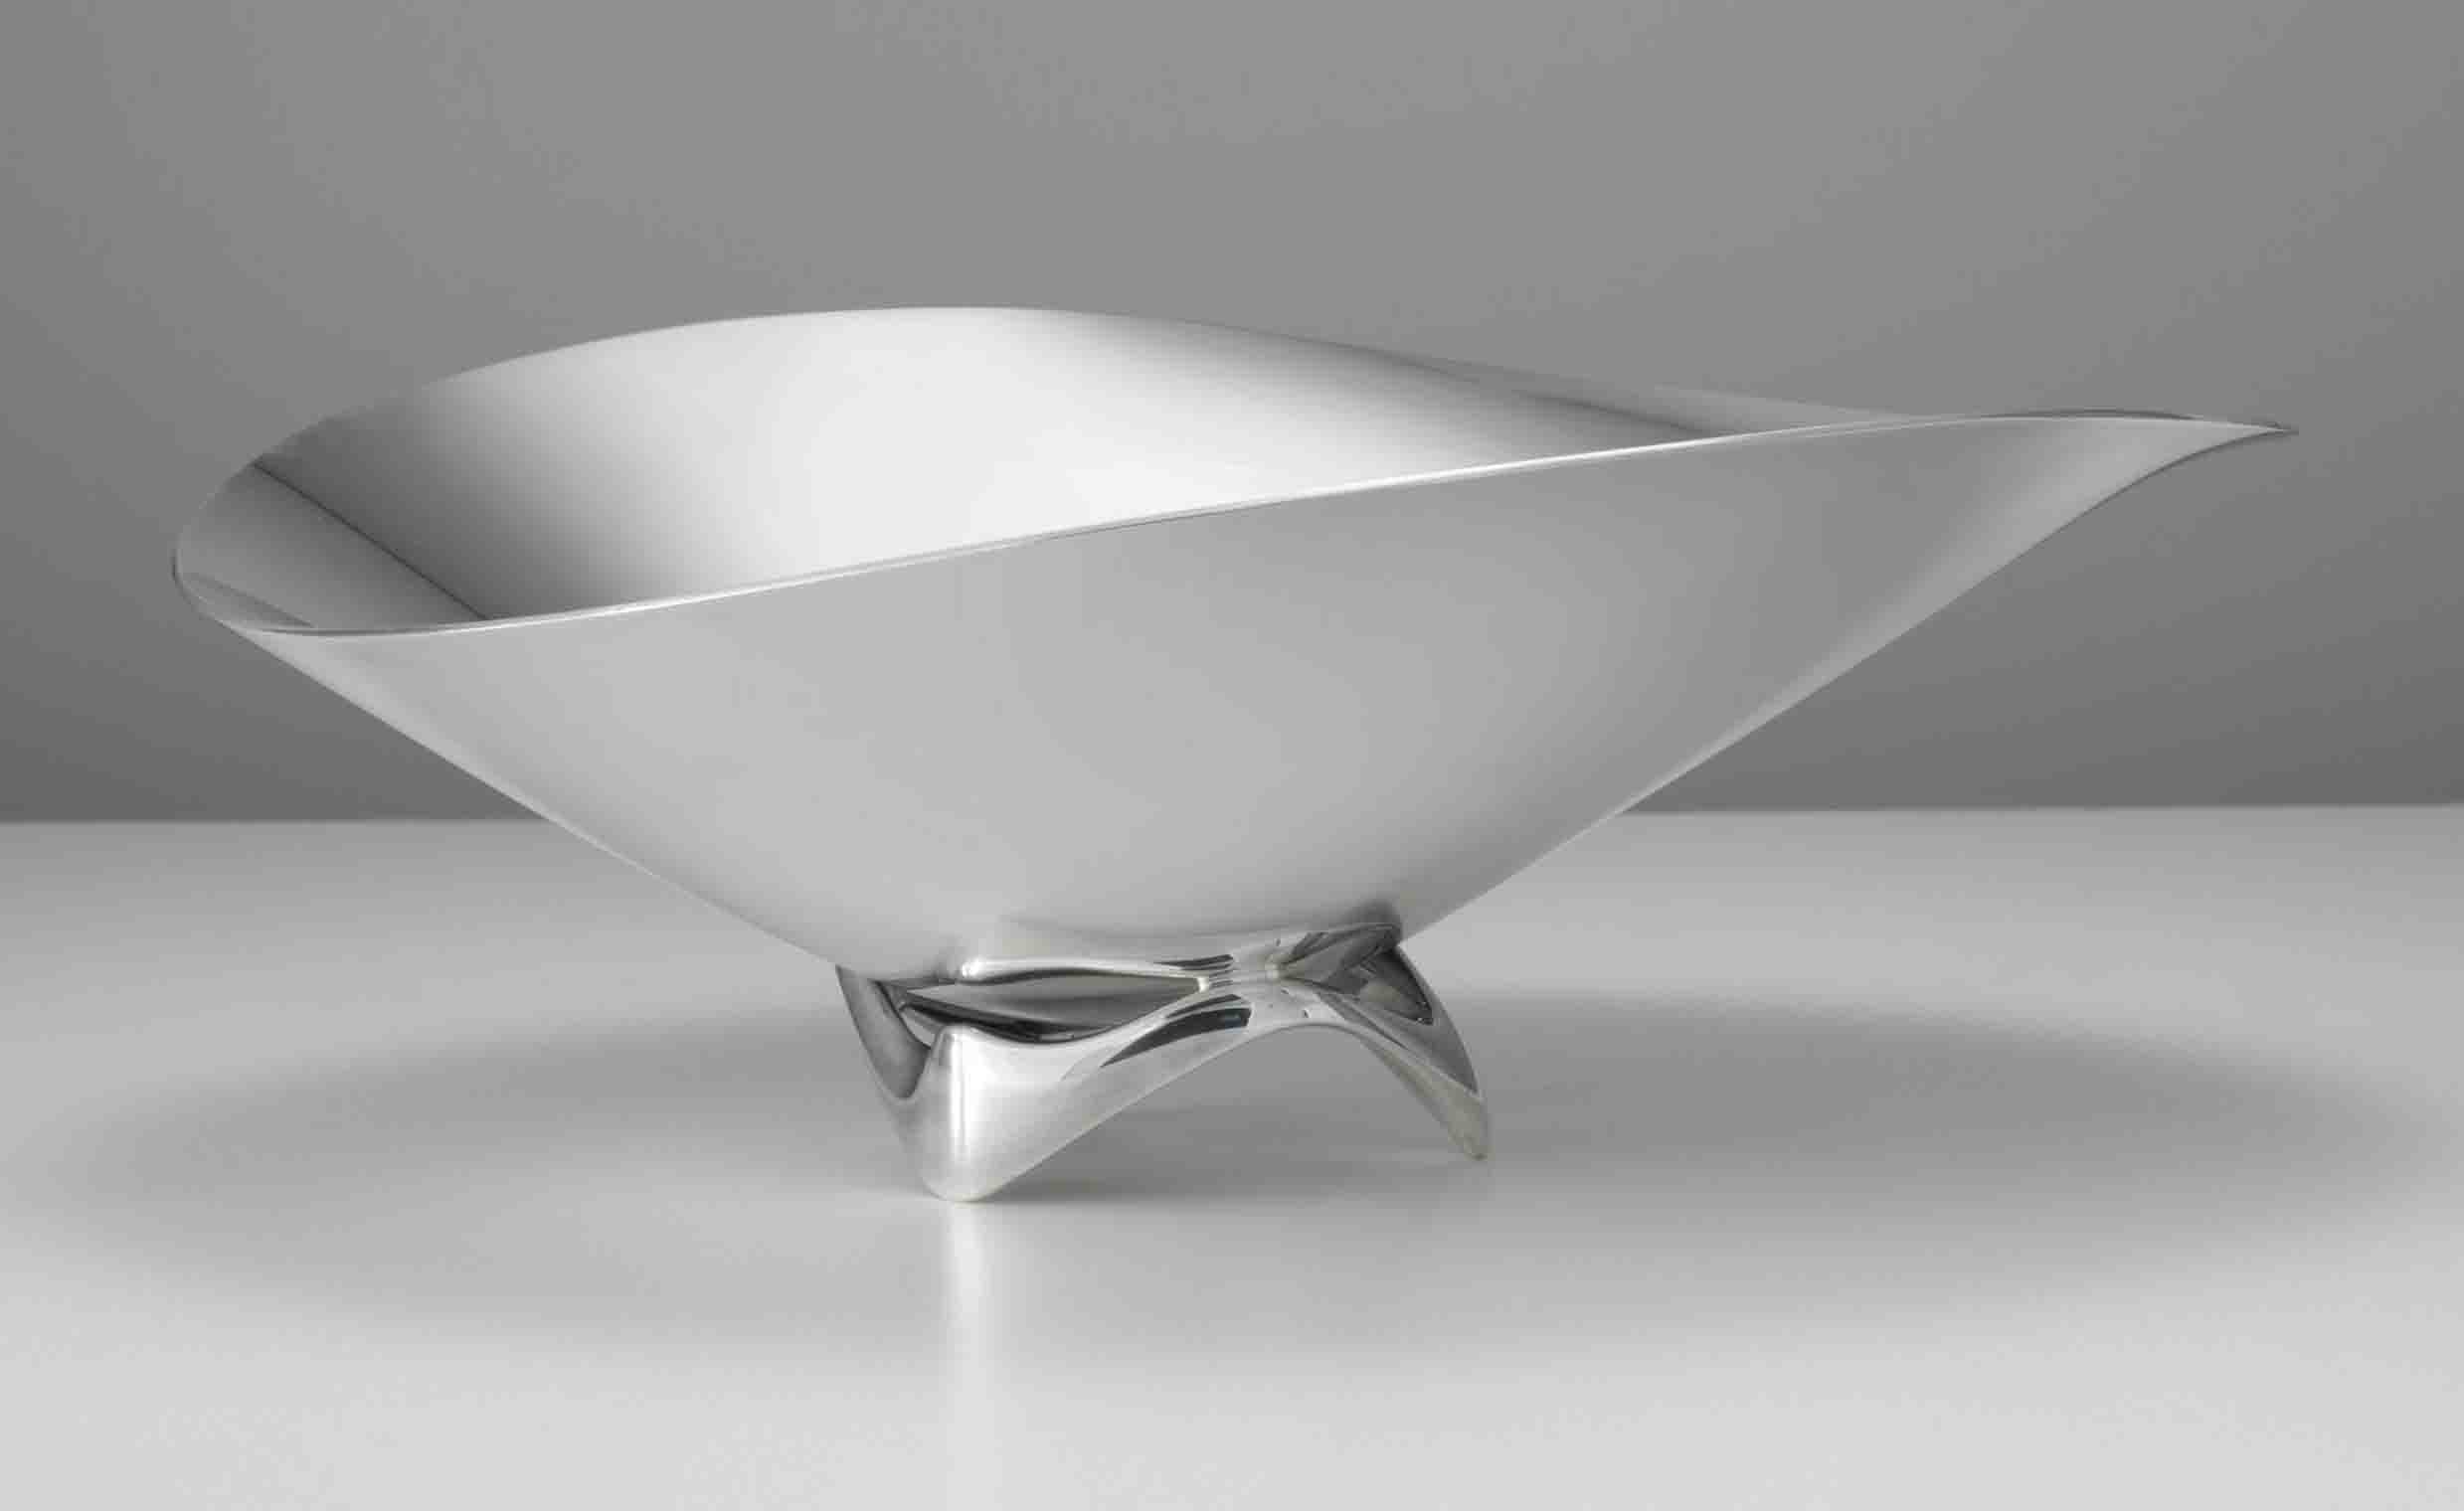 A DANISH SILVER BOWL, DESIGNED BY HENNING KOPPEL